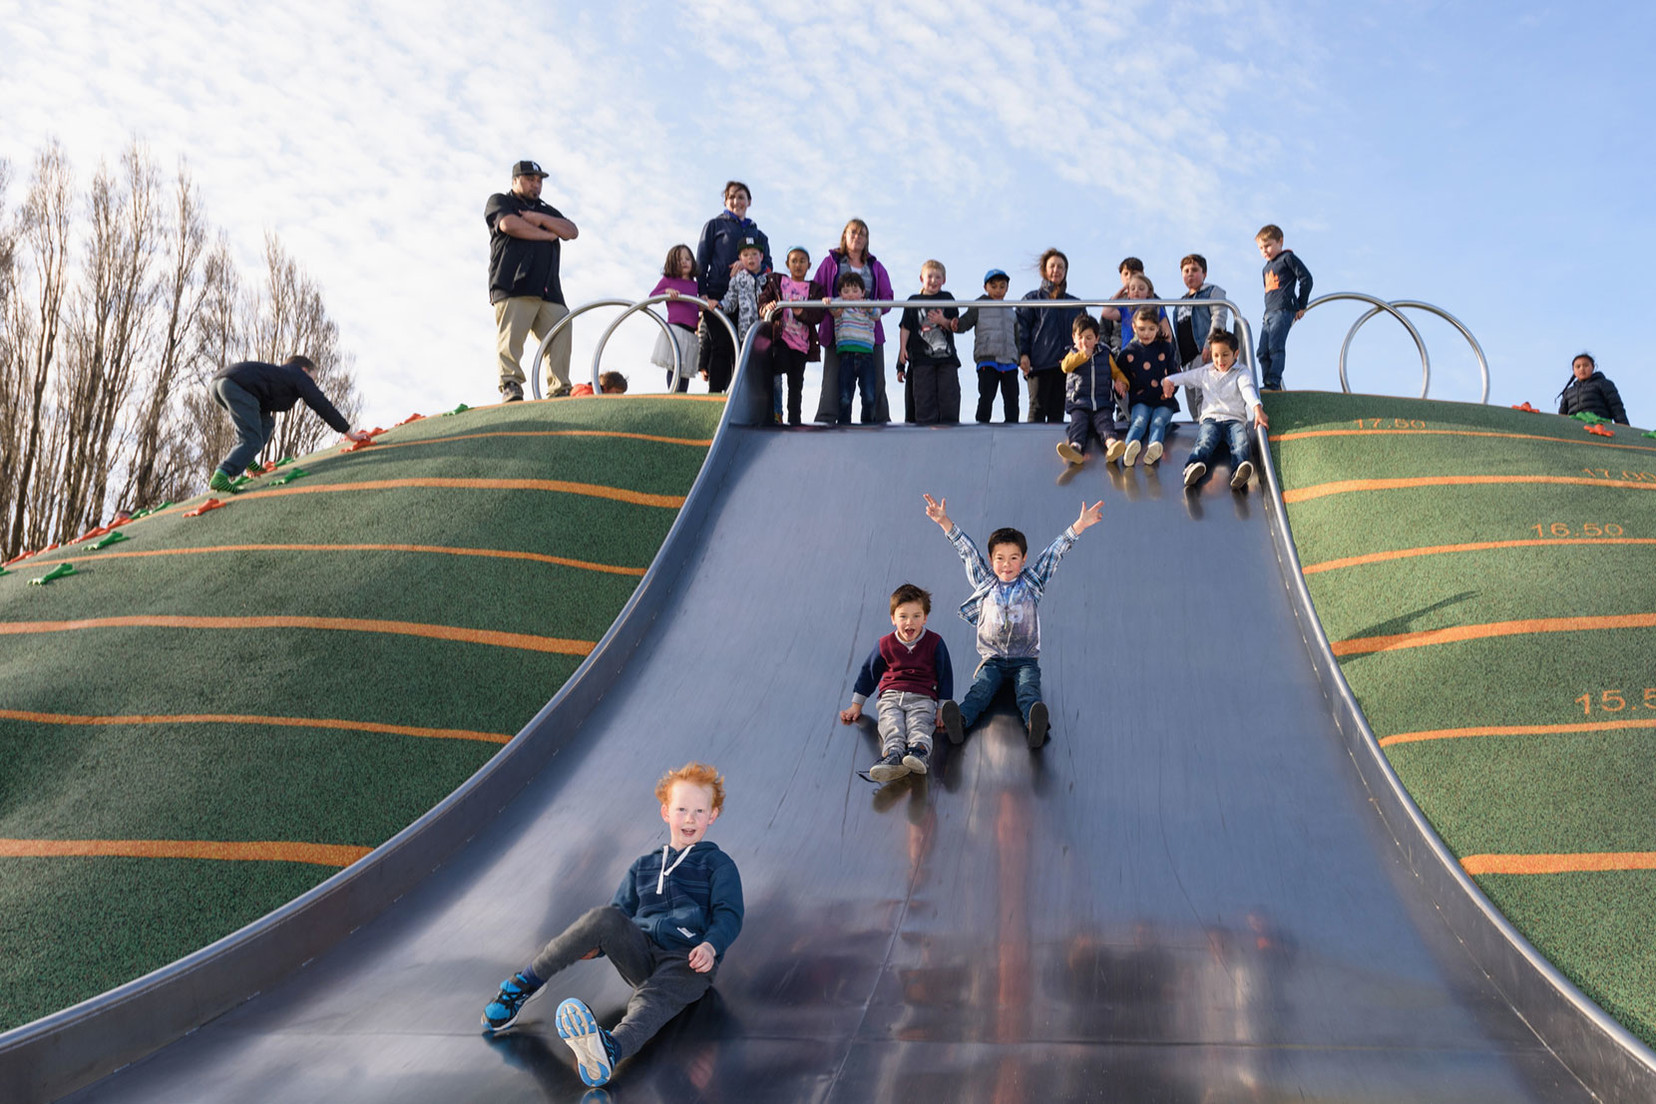 The award winning Margaret Mahy Family Playground by WSP Opus brought play back to post-quake central Christchurch. Photo courtesy of Opus International Consultants Ltd.